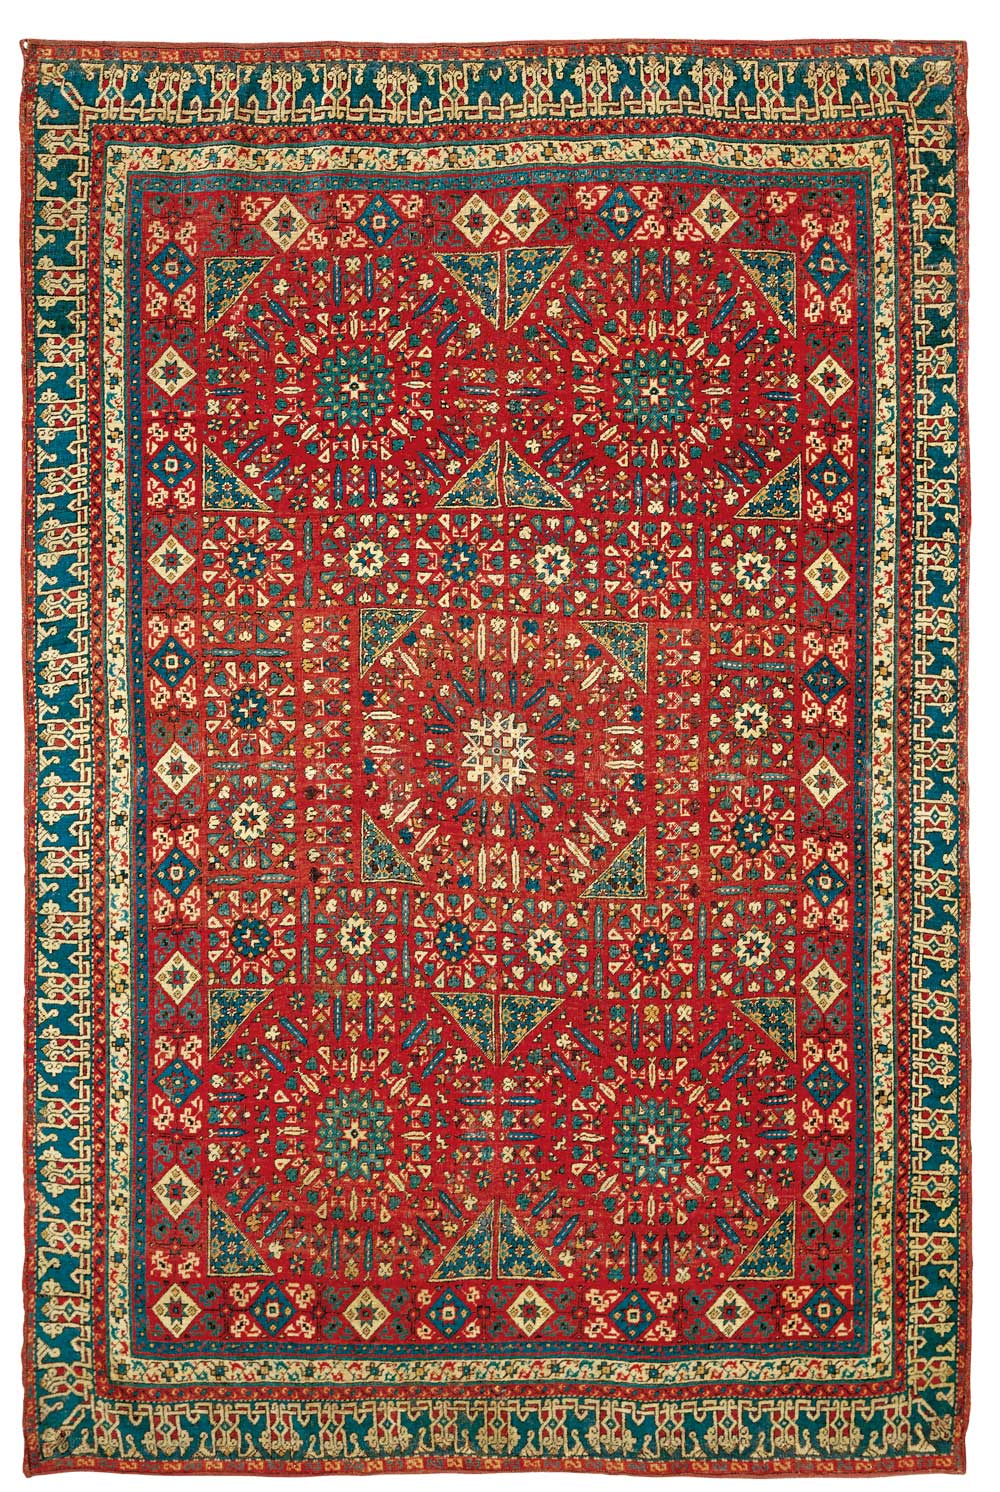 Classical Carpets And Renaissance Paintings In Venice Hali